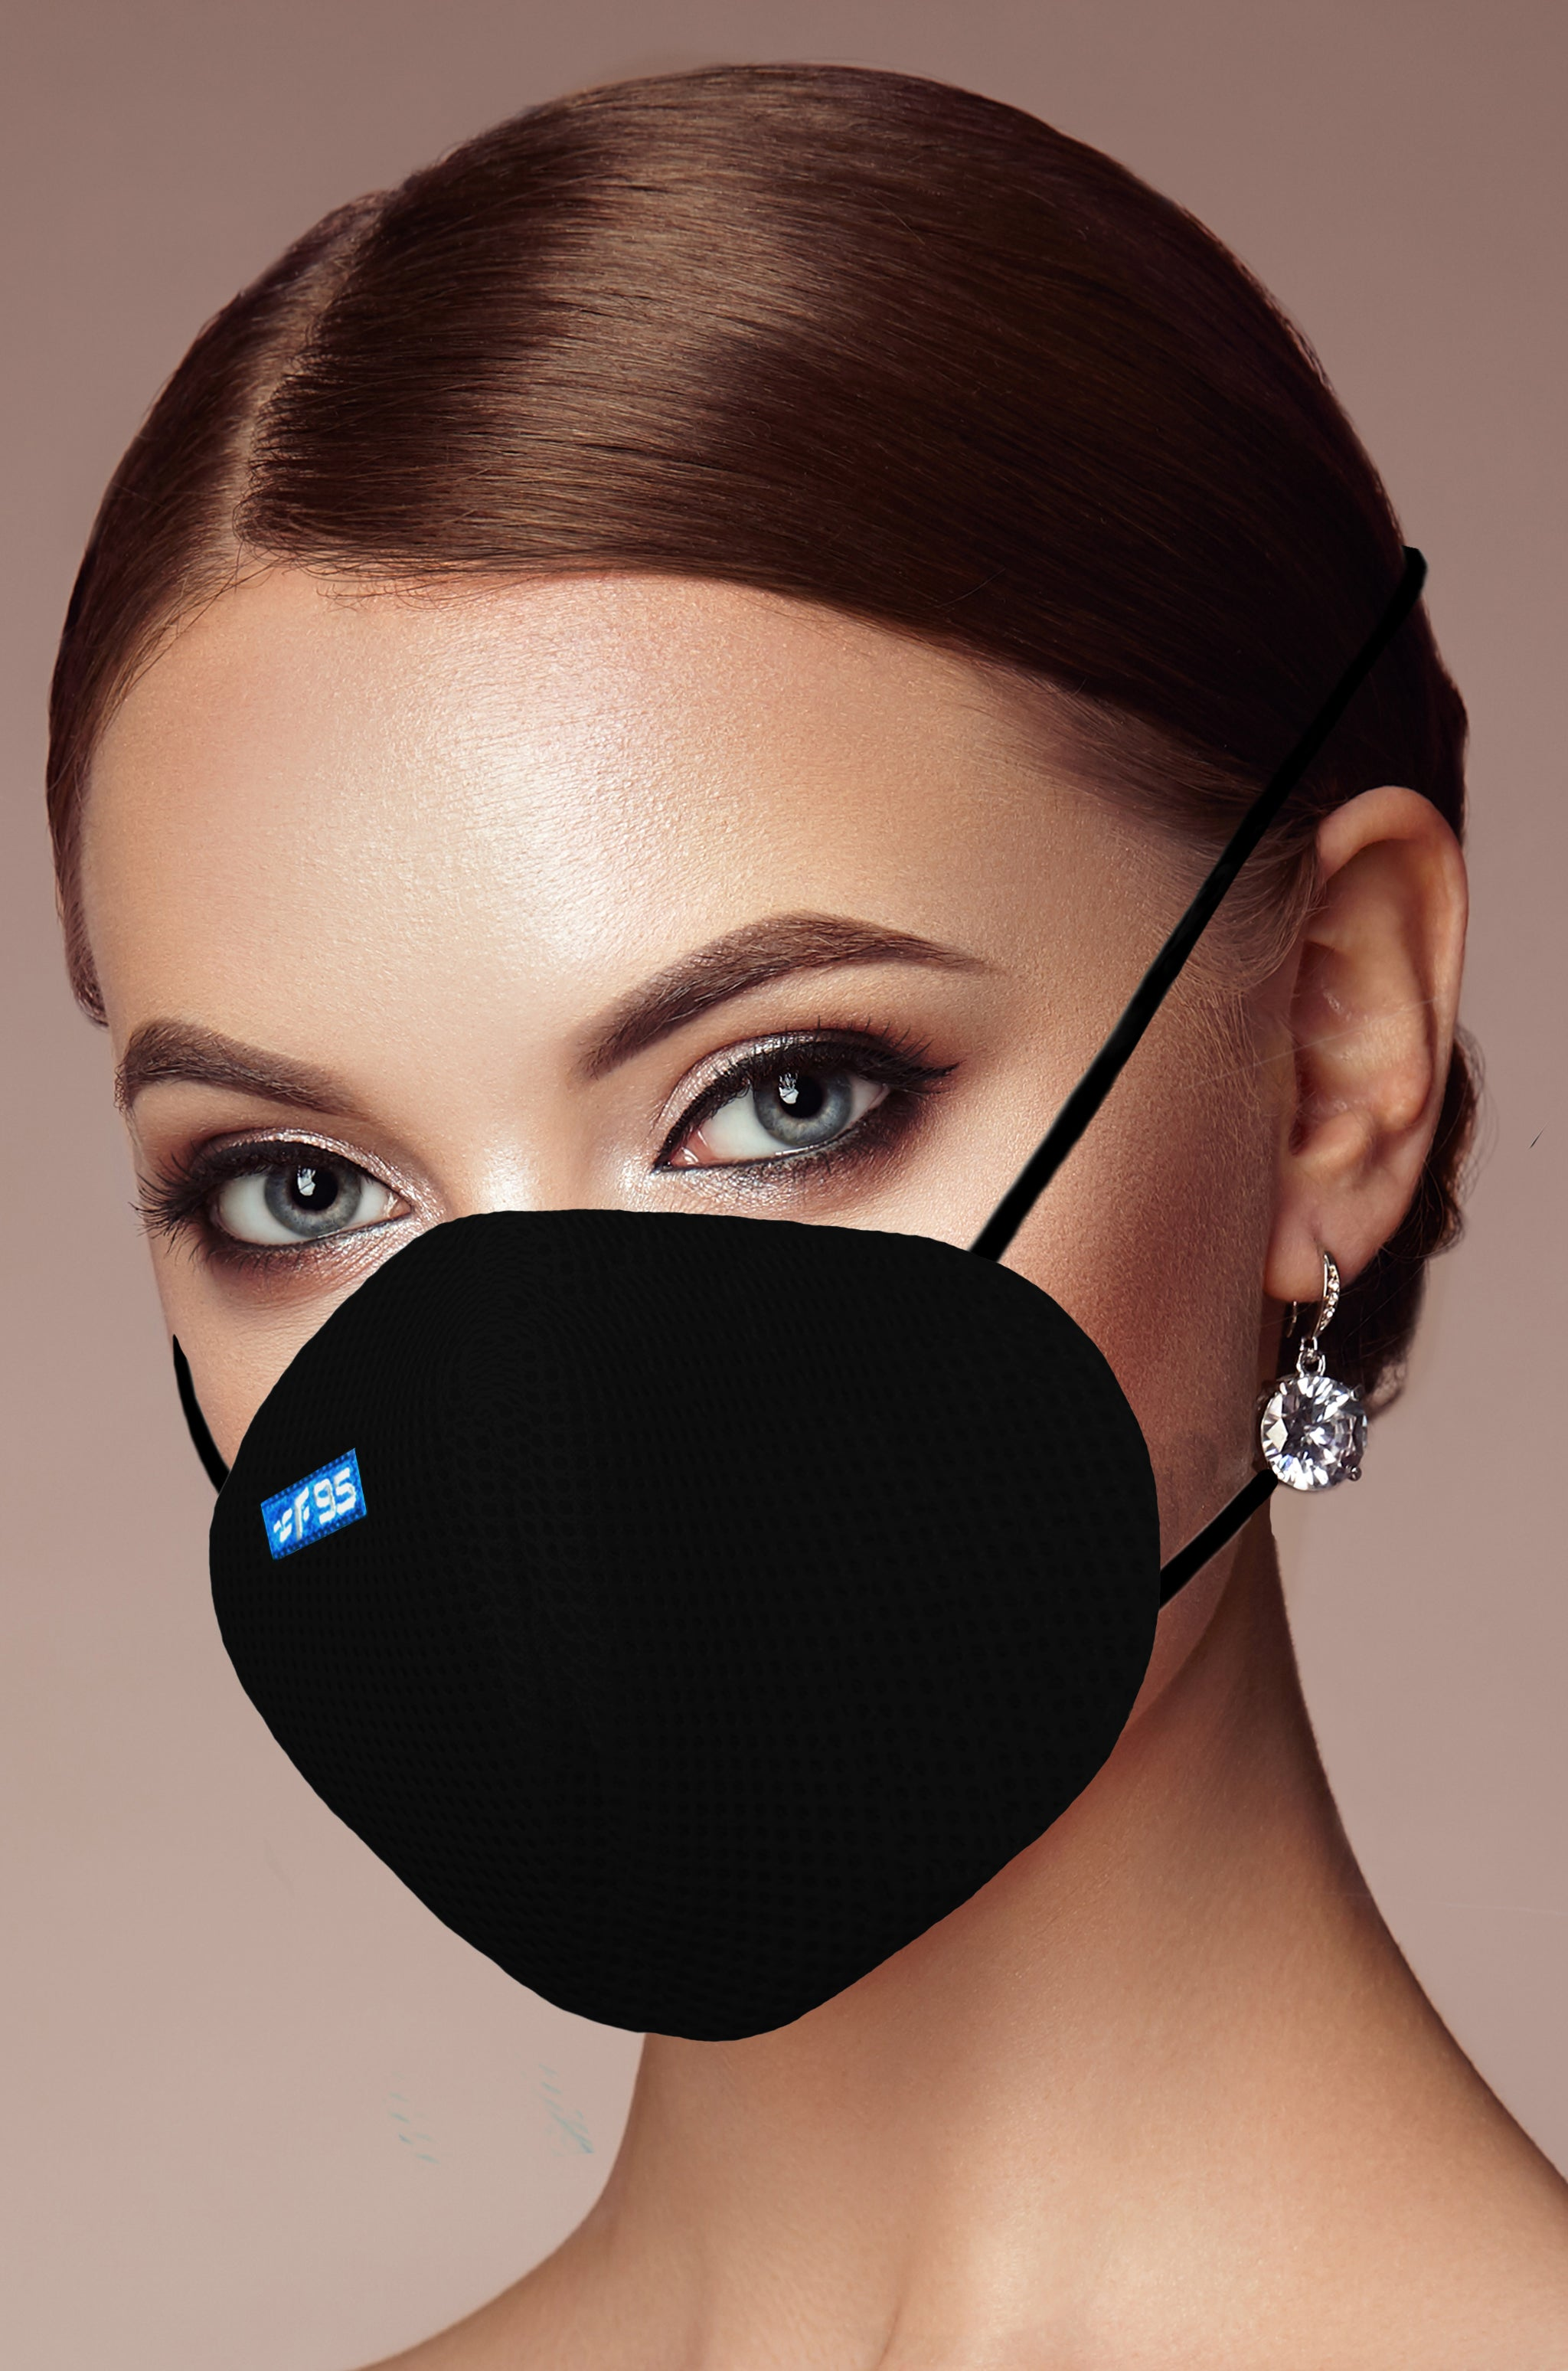 F Gear Pearl F95 Mask Black Pack of 1 Safeguard 7 layer ISO CE SITRA lab certified >95% Bacteria Filtration